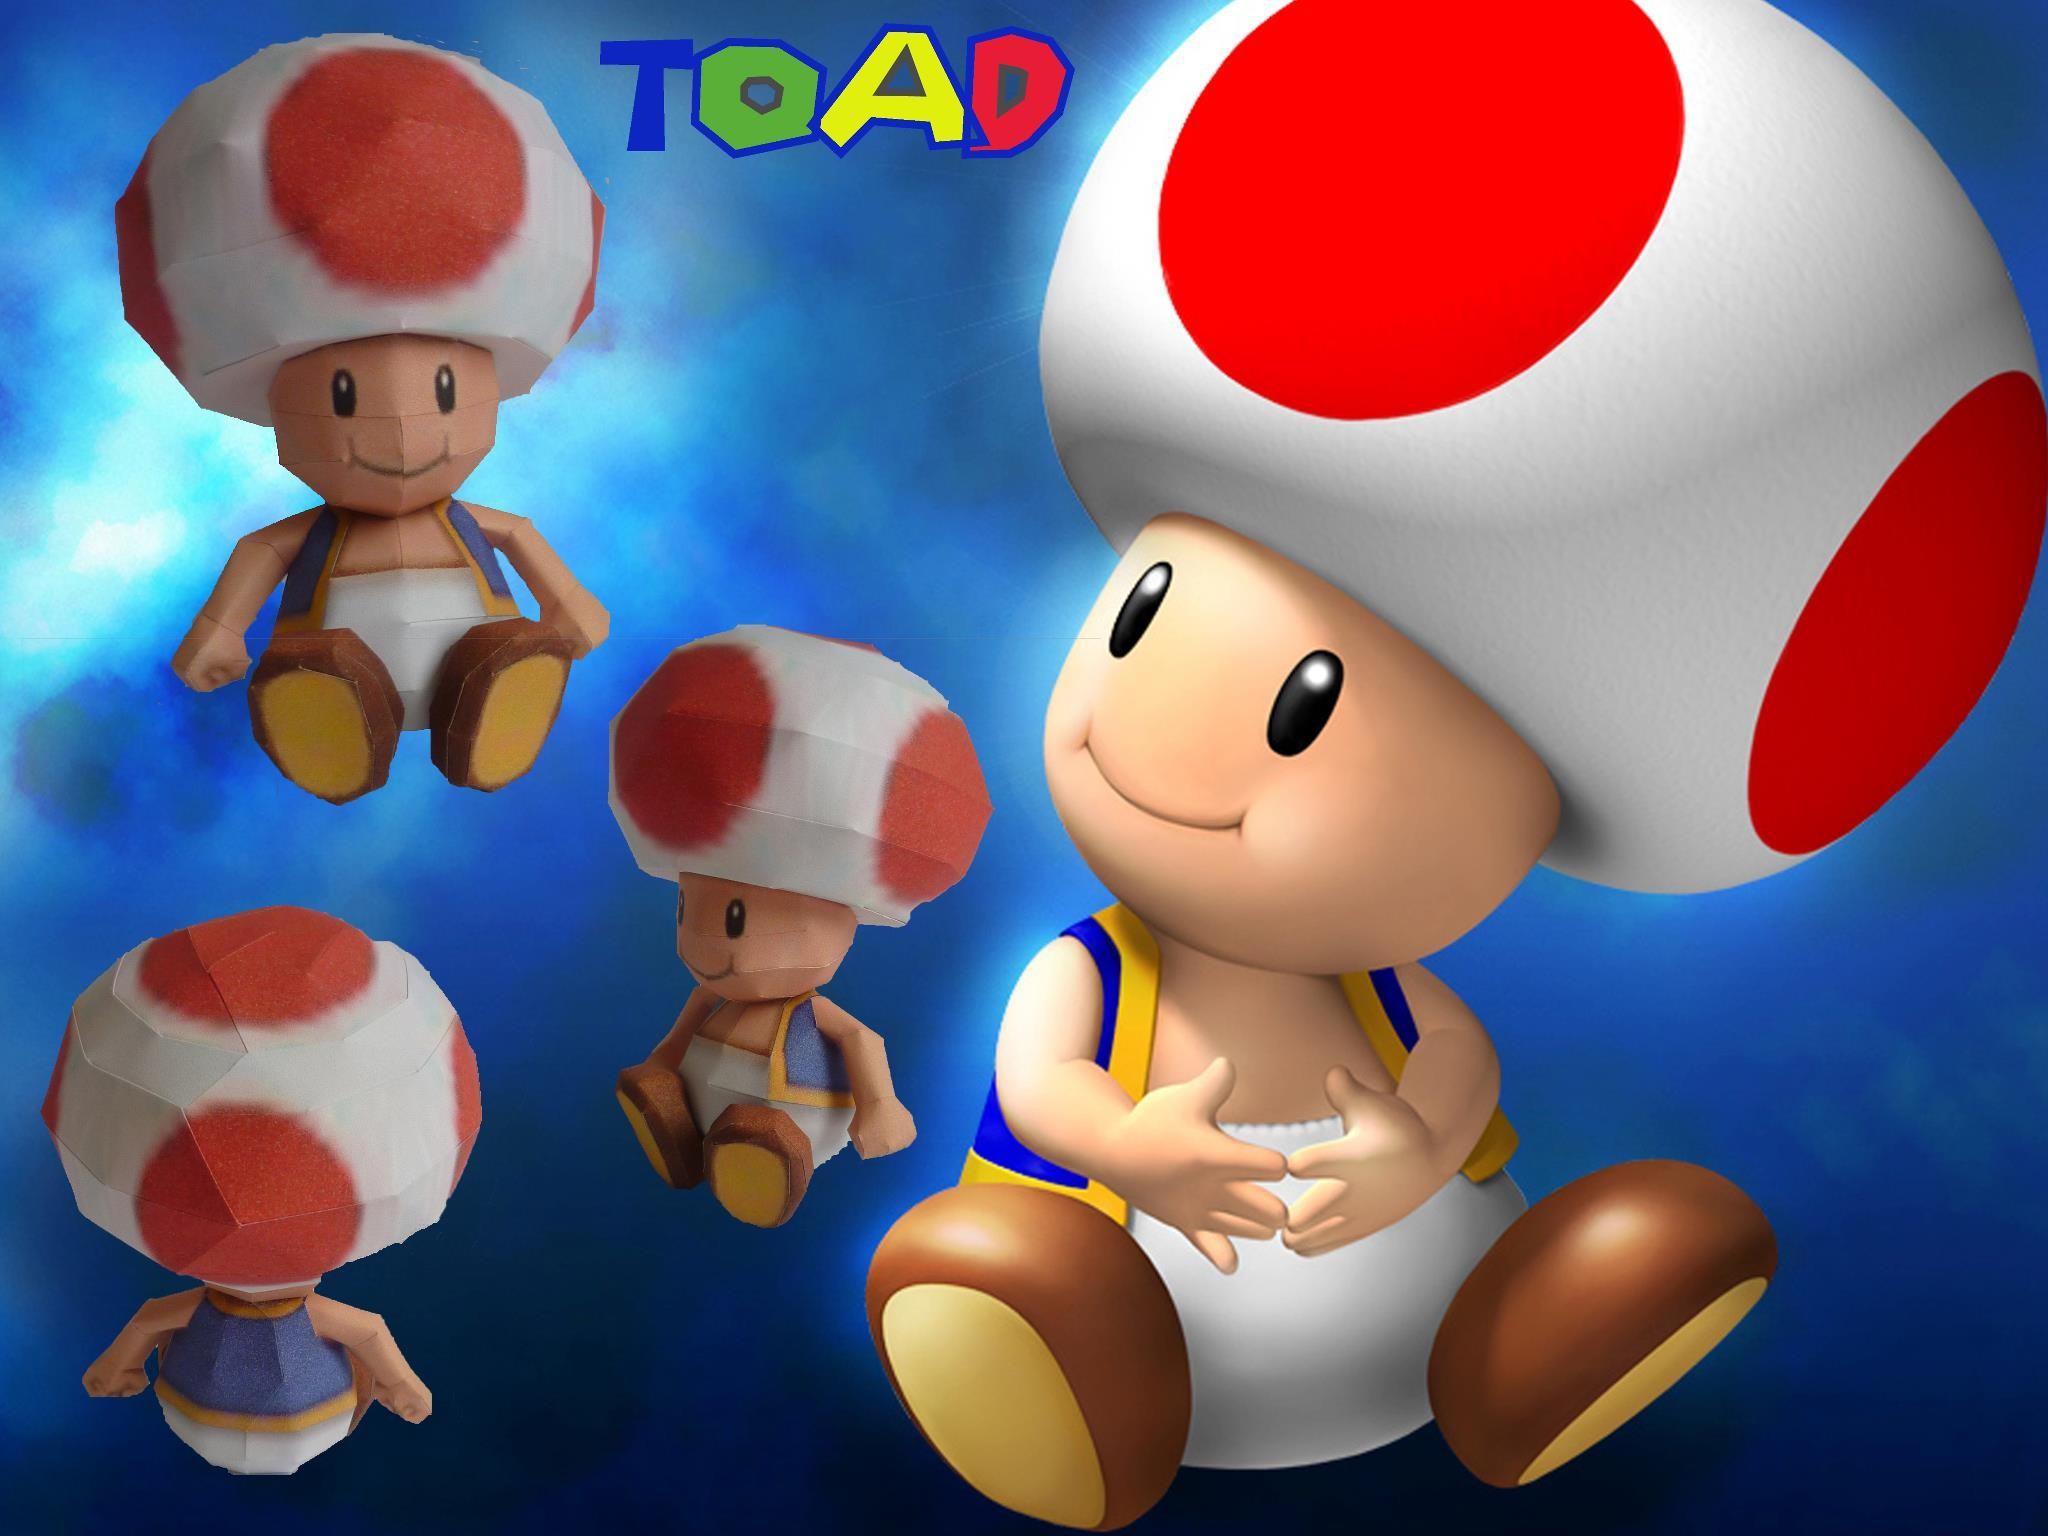 2048x1536 Toad papercraft by dodoman75 Toad papercraft by dodoman75